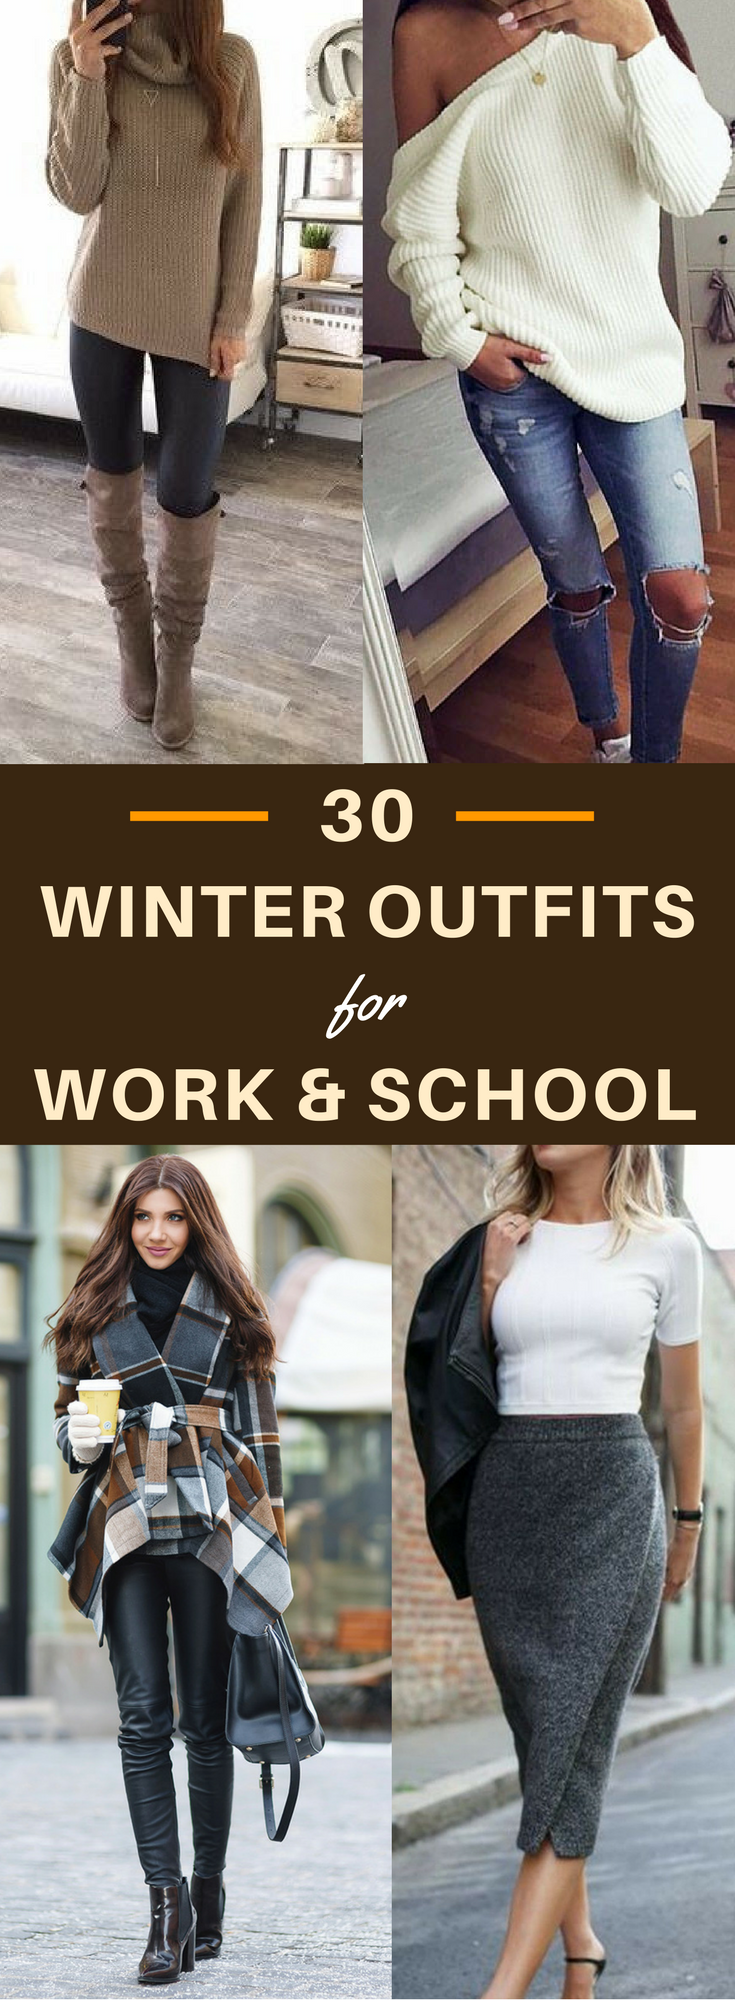 4c6c593e1dc 30 Decent Yet Chic Winter Outfits for Work AND School -